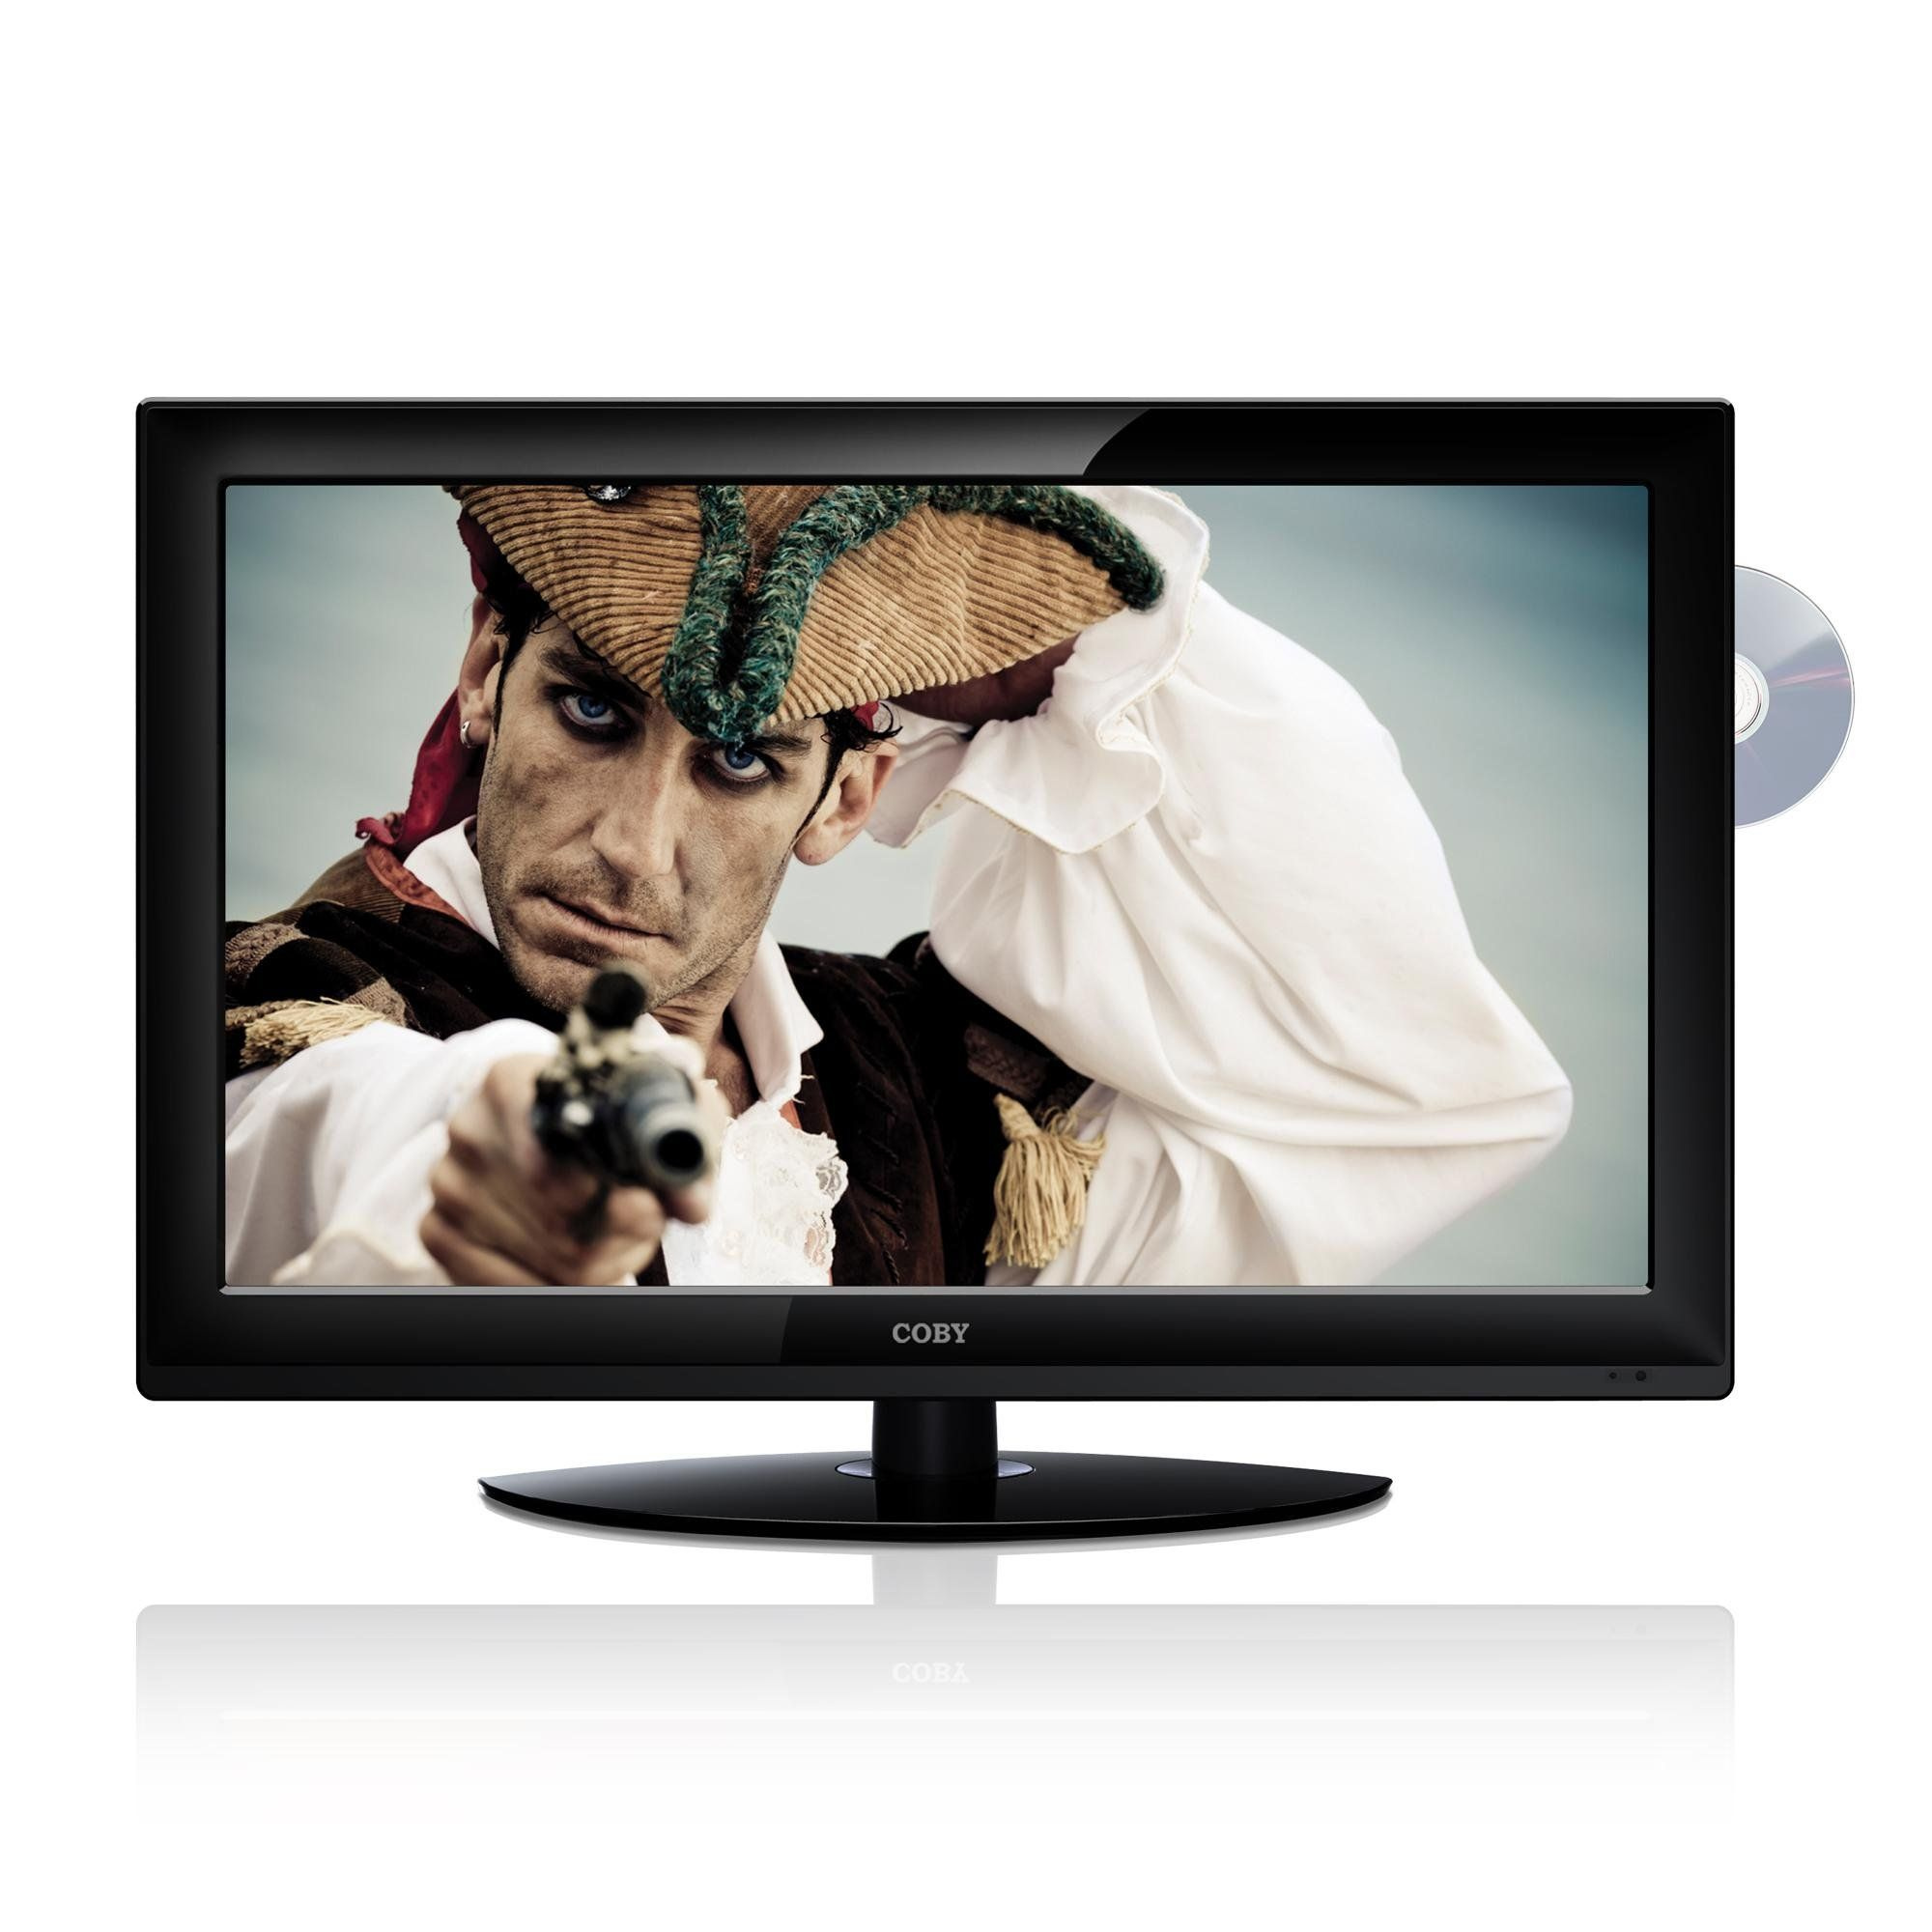 Coby TFDVD3299 32-Inch 720p 60Hz Widescreen LCD HDTV